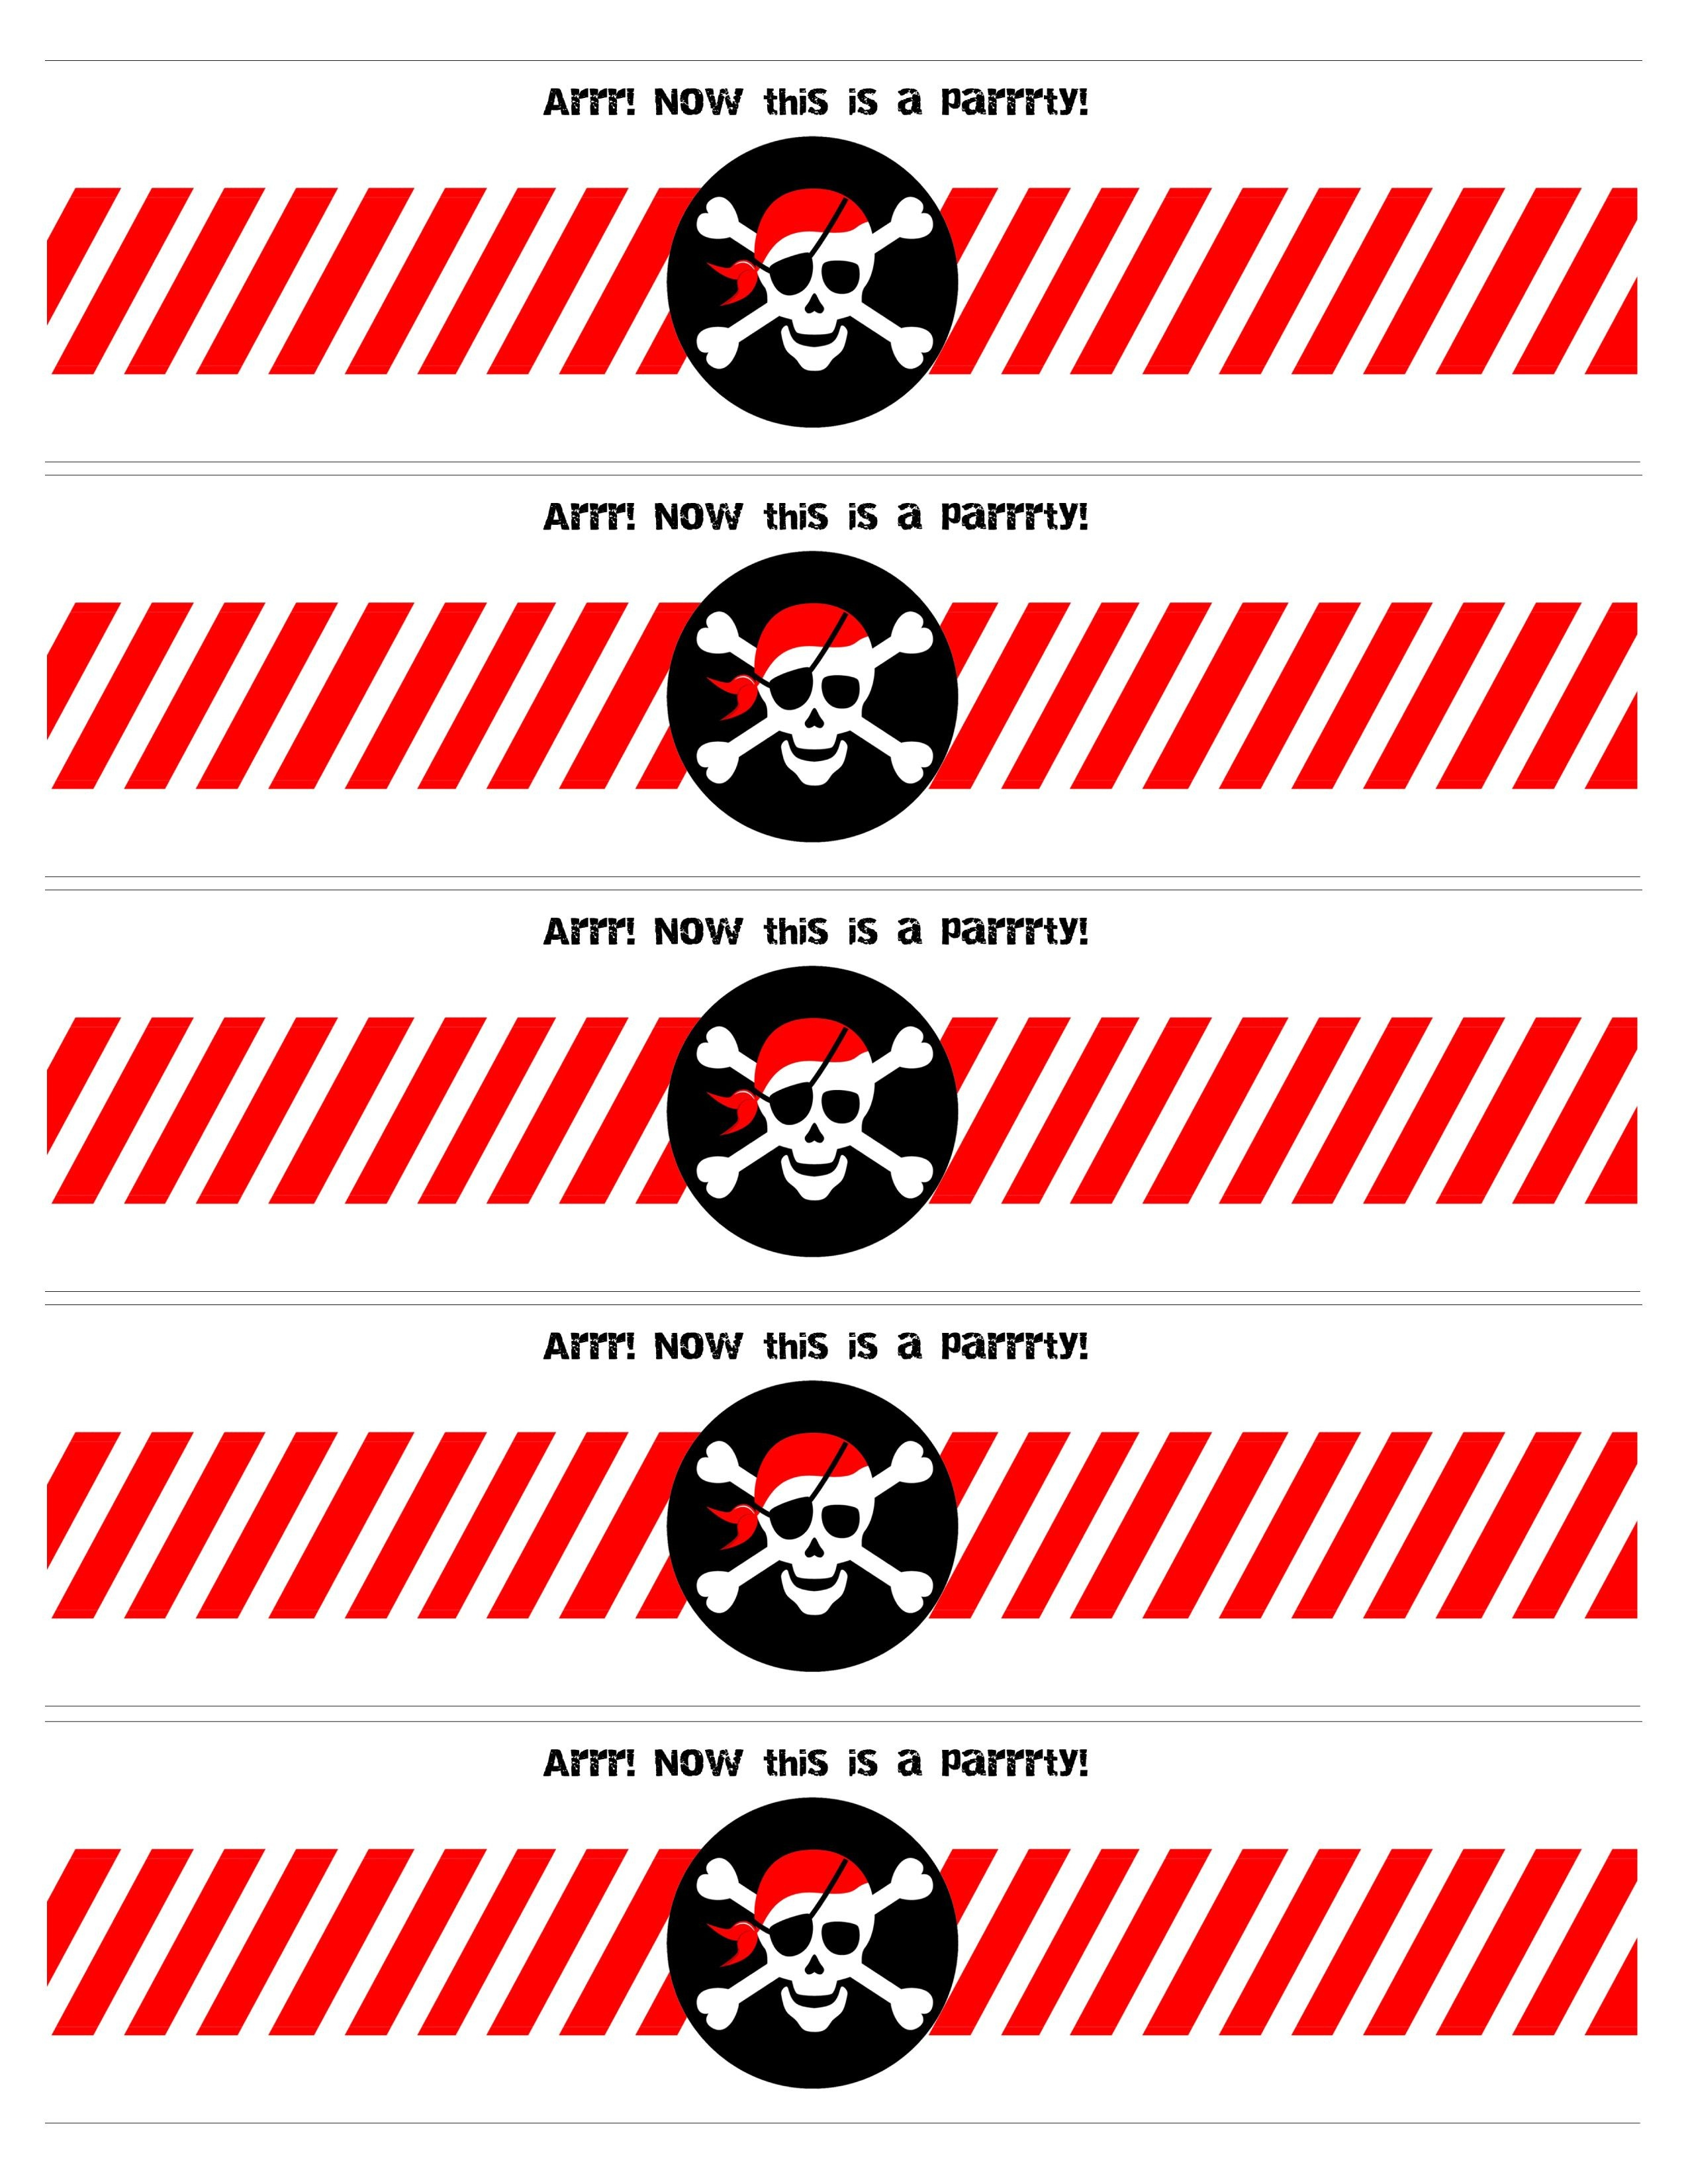 Pirate Birthday Party With Free Printables | Free Label Printables - Free Printable Pirate Cupcake Toppers